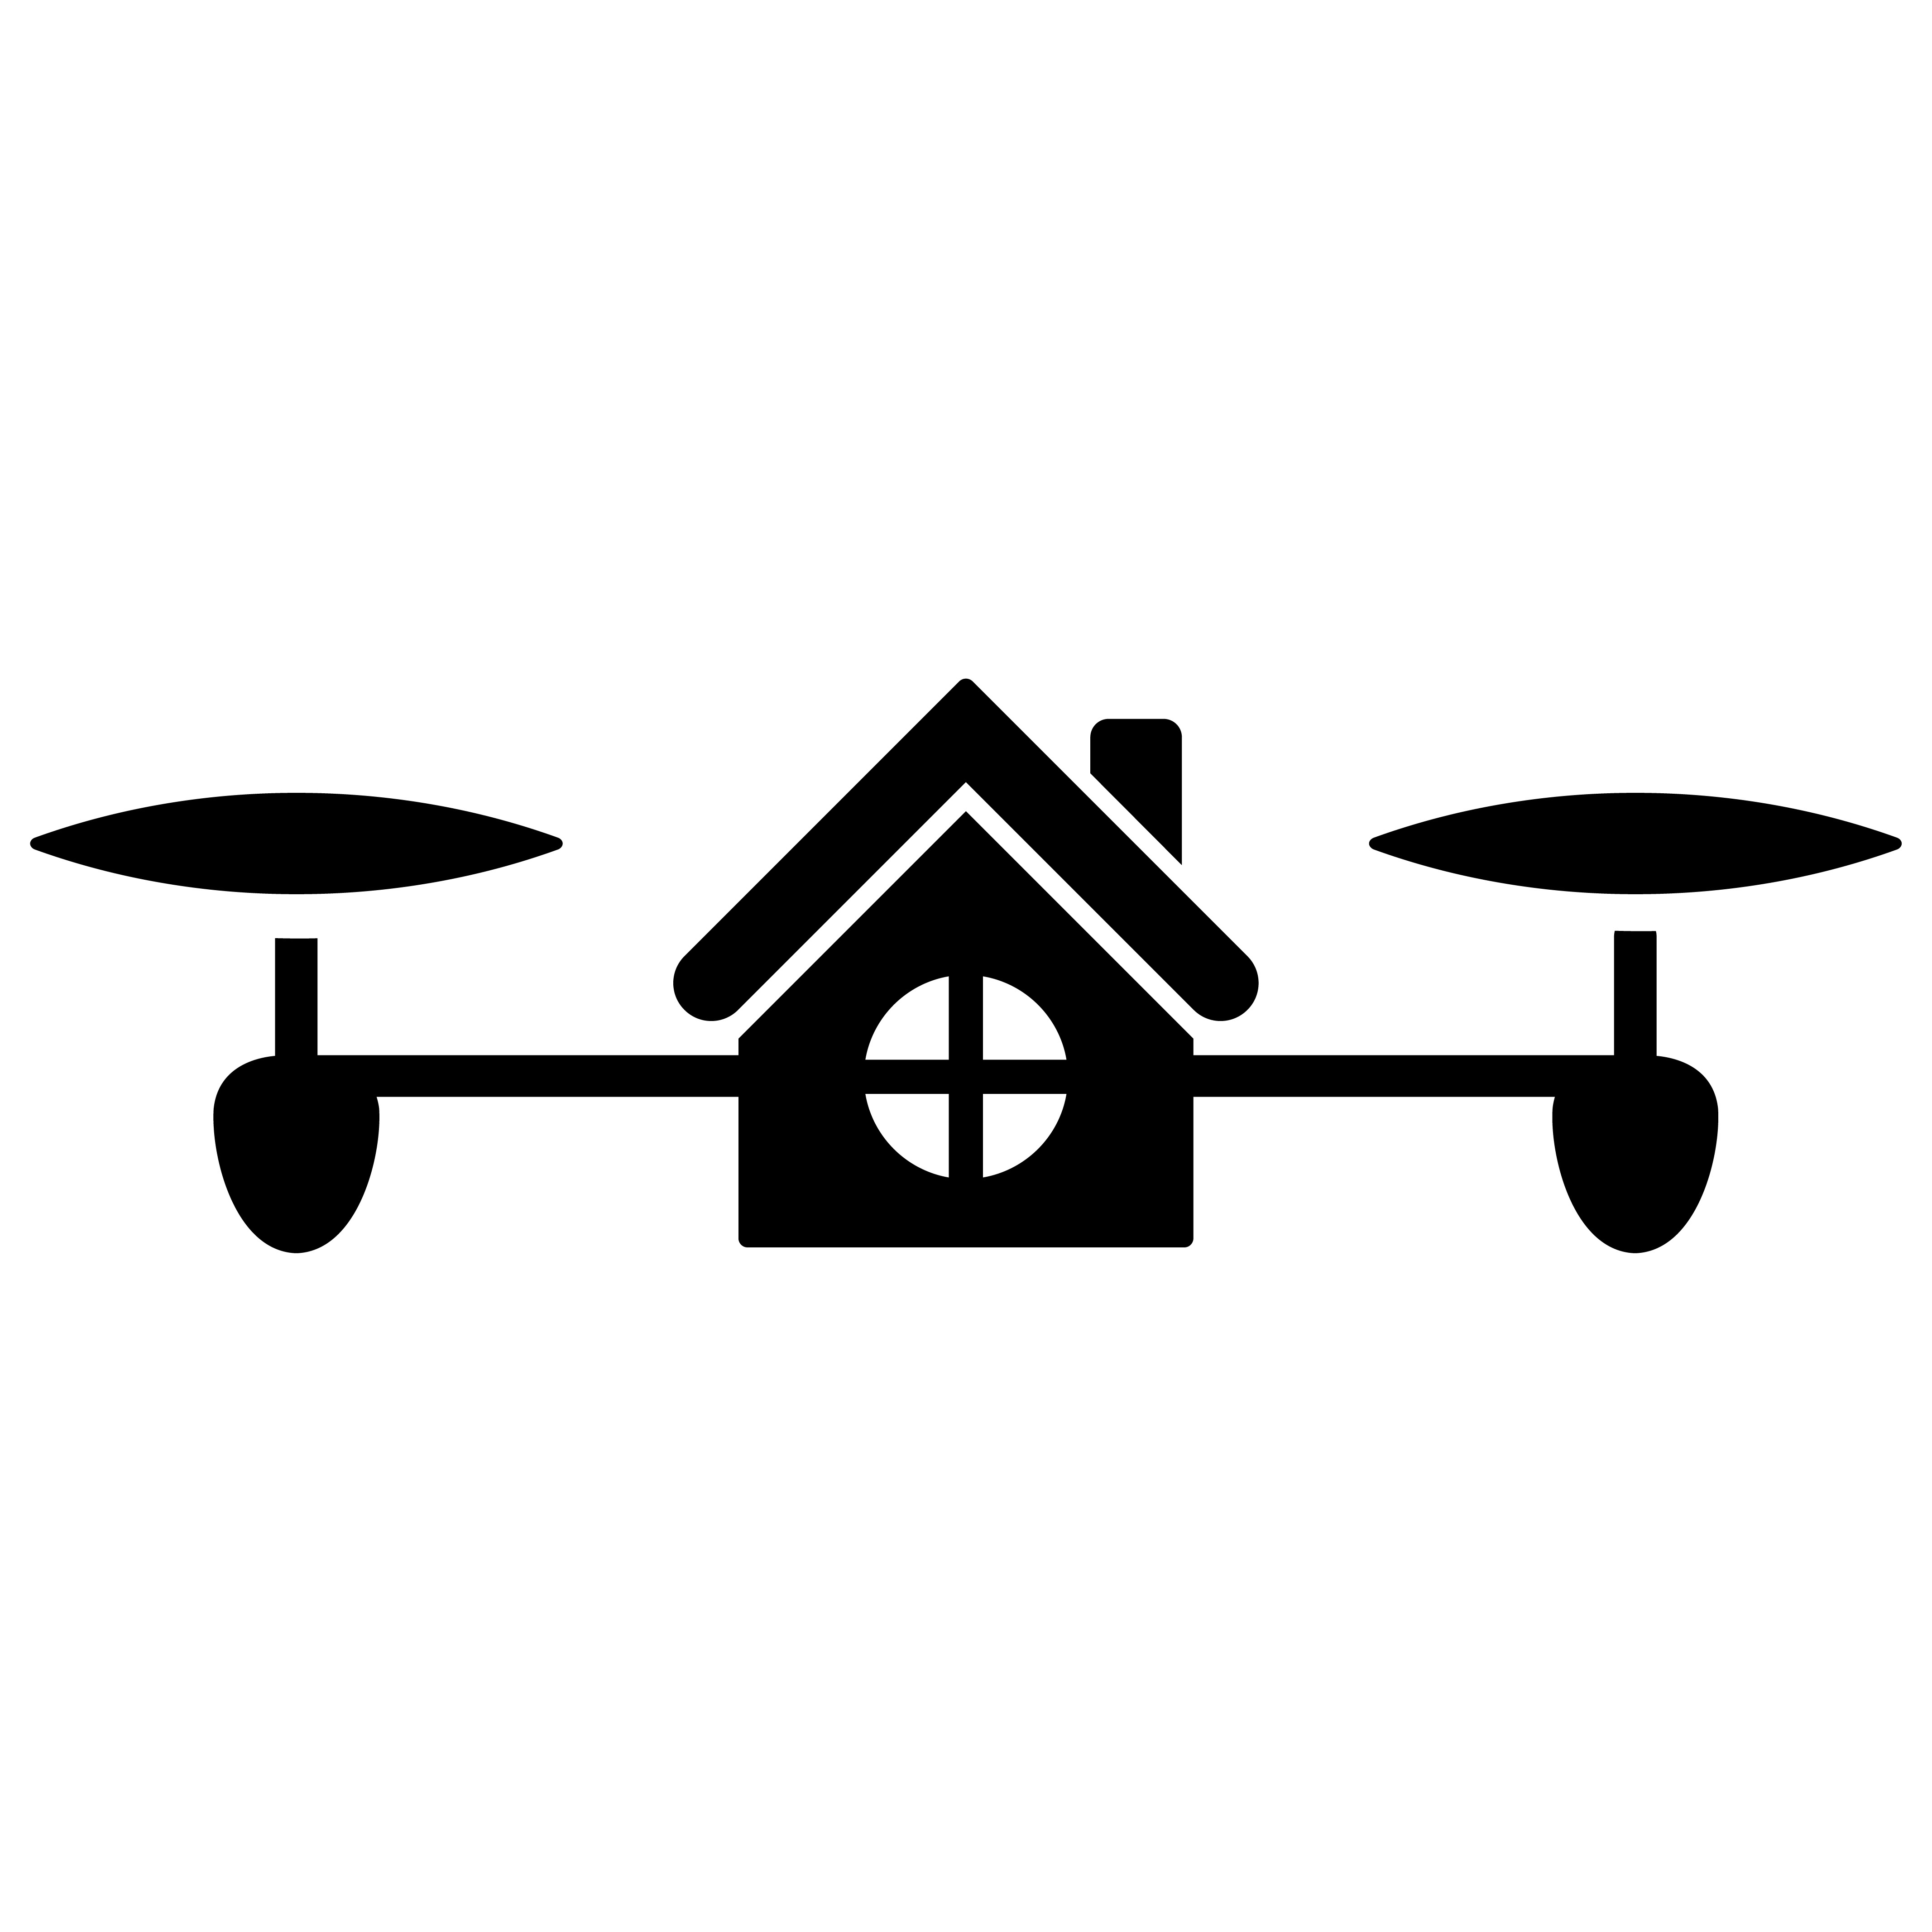 6 Ways You Could Use a Drone in Construction Projects